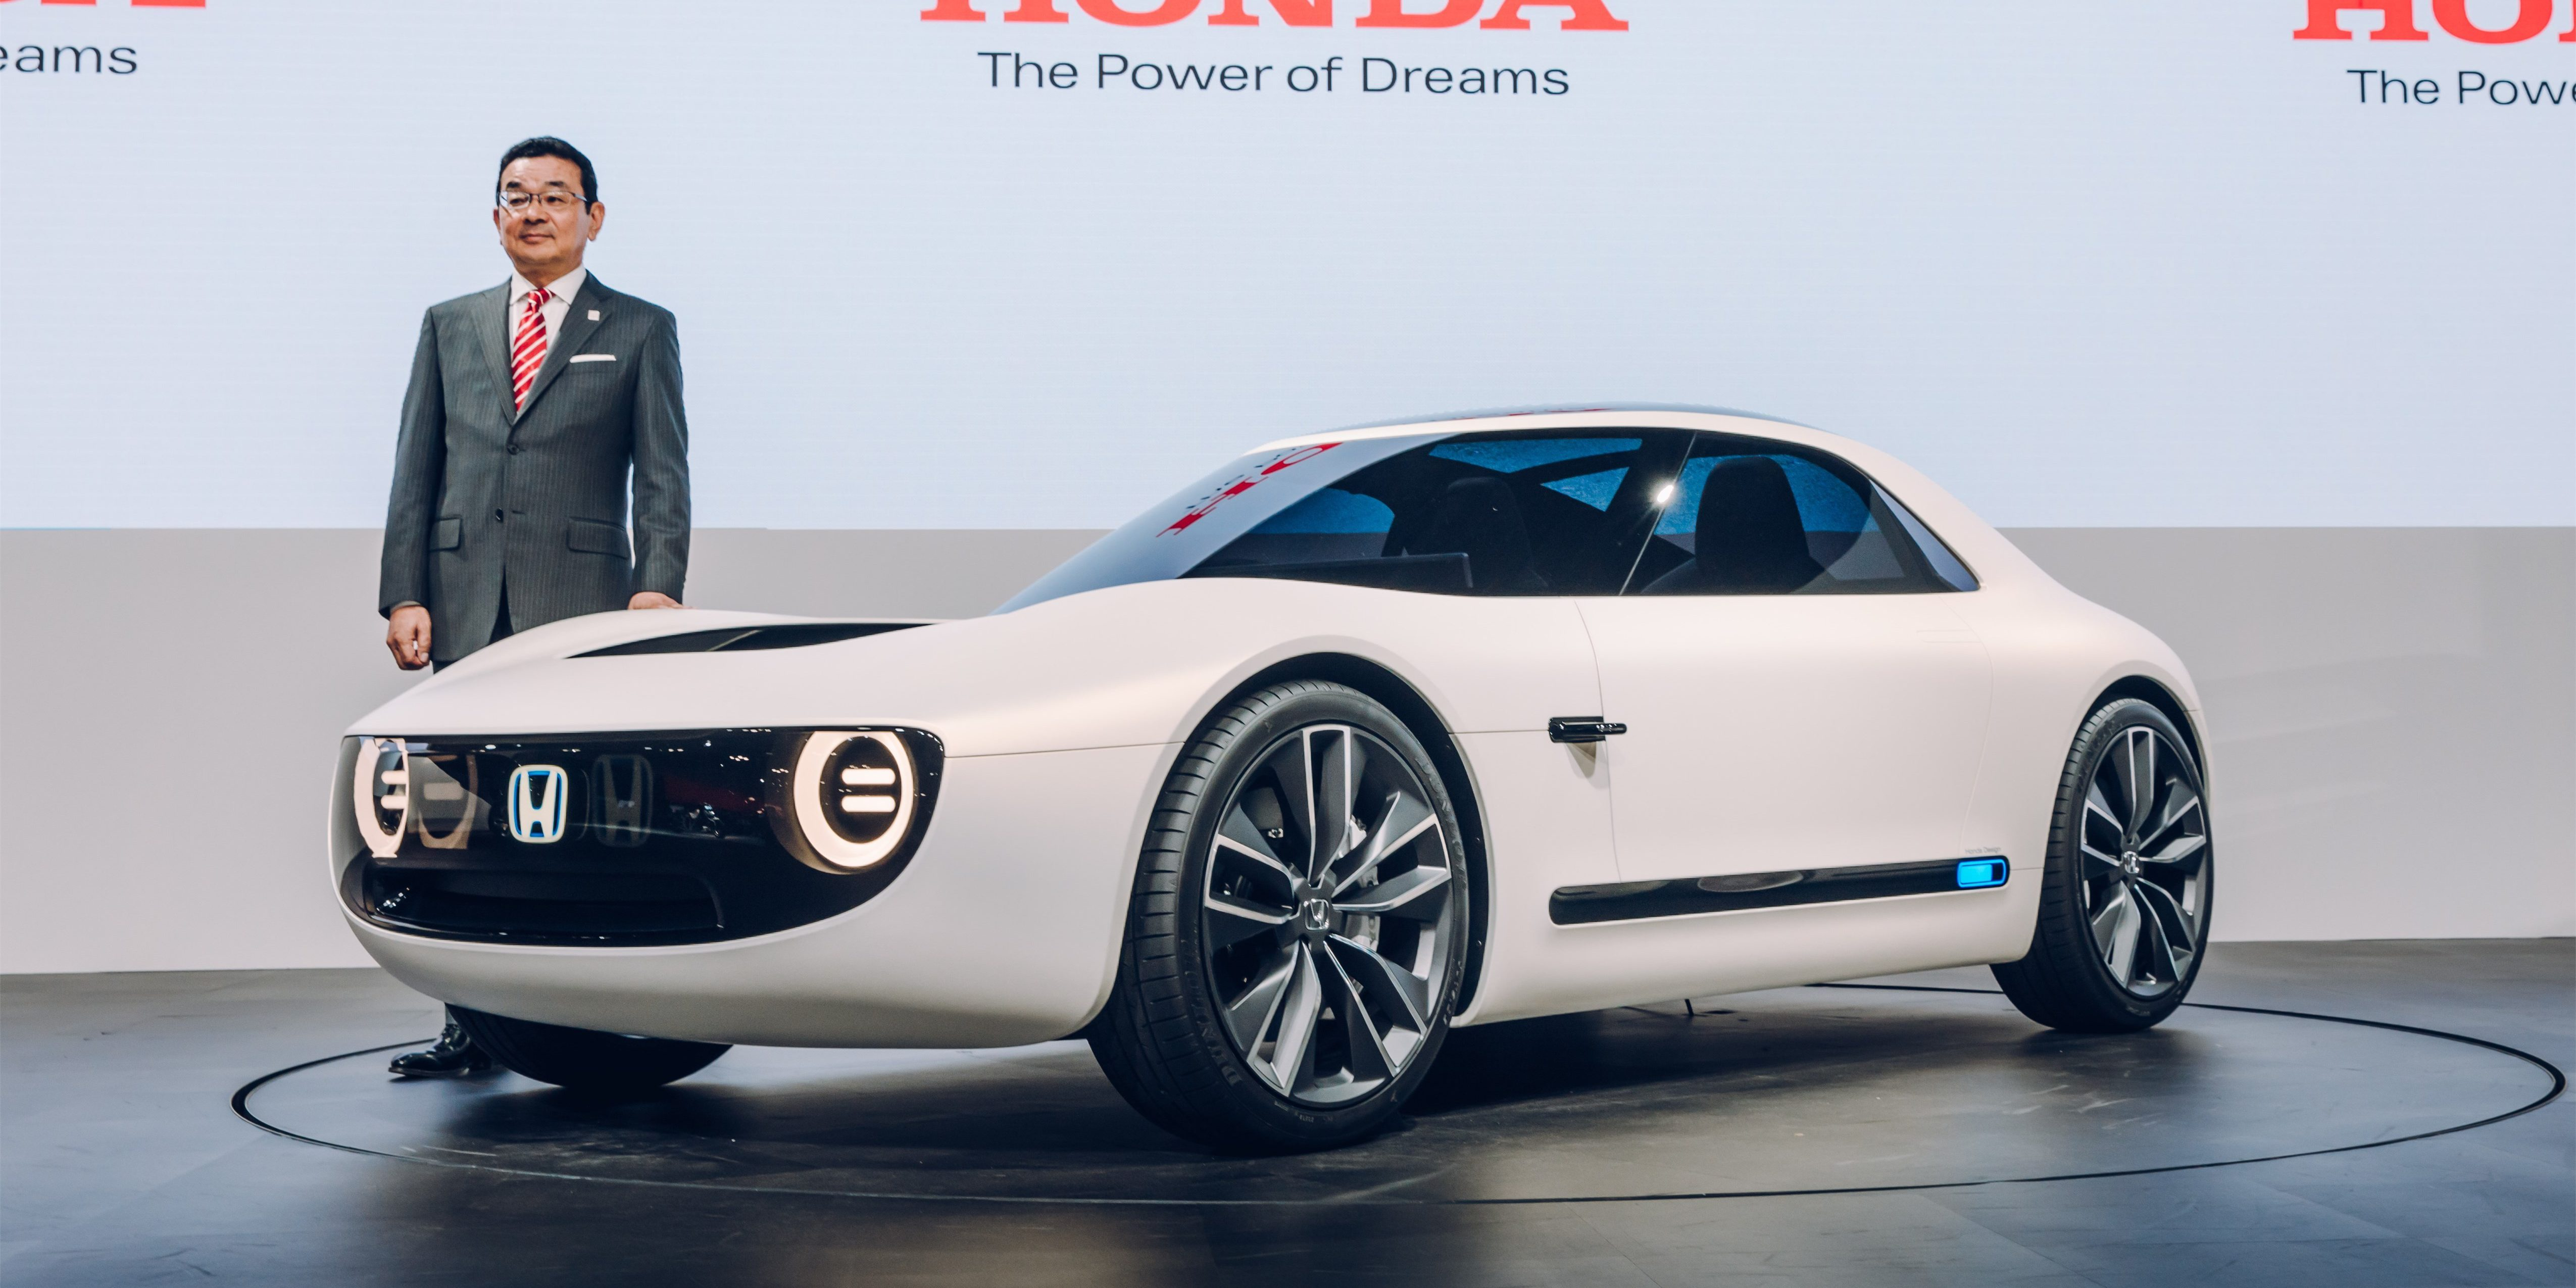 Car Sites Inspirational Honda Unveils All Electric Sports Car Concept Based On New Electric